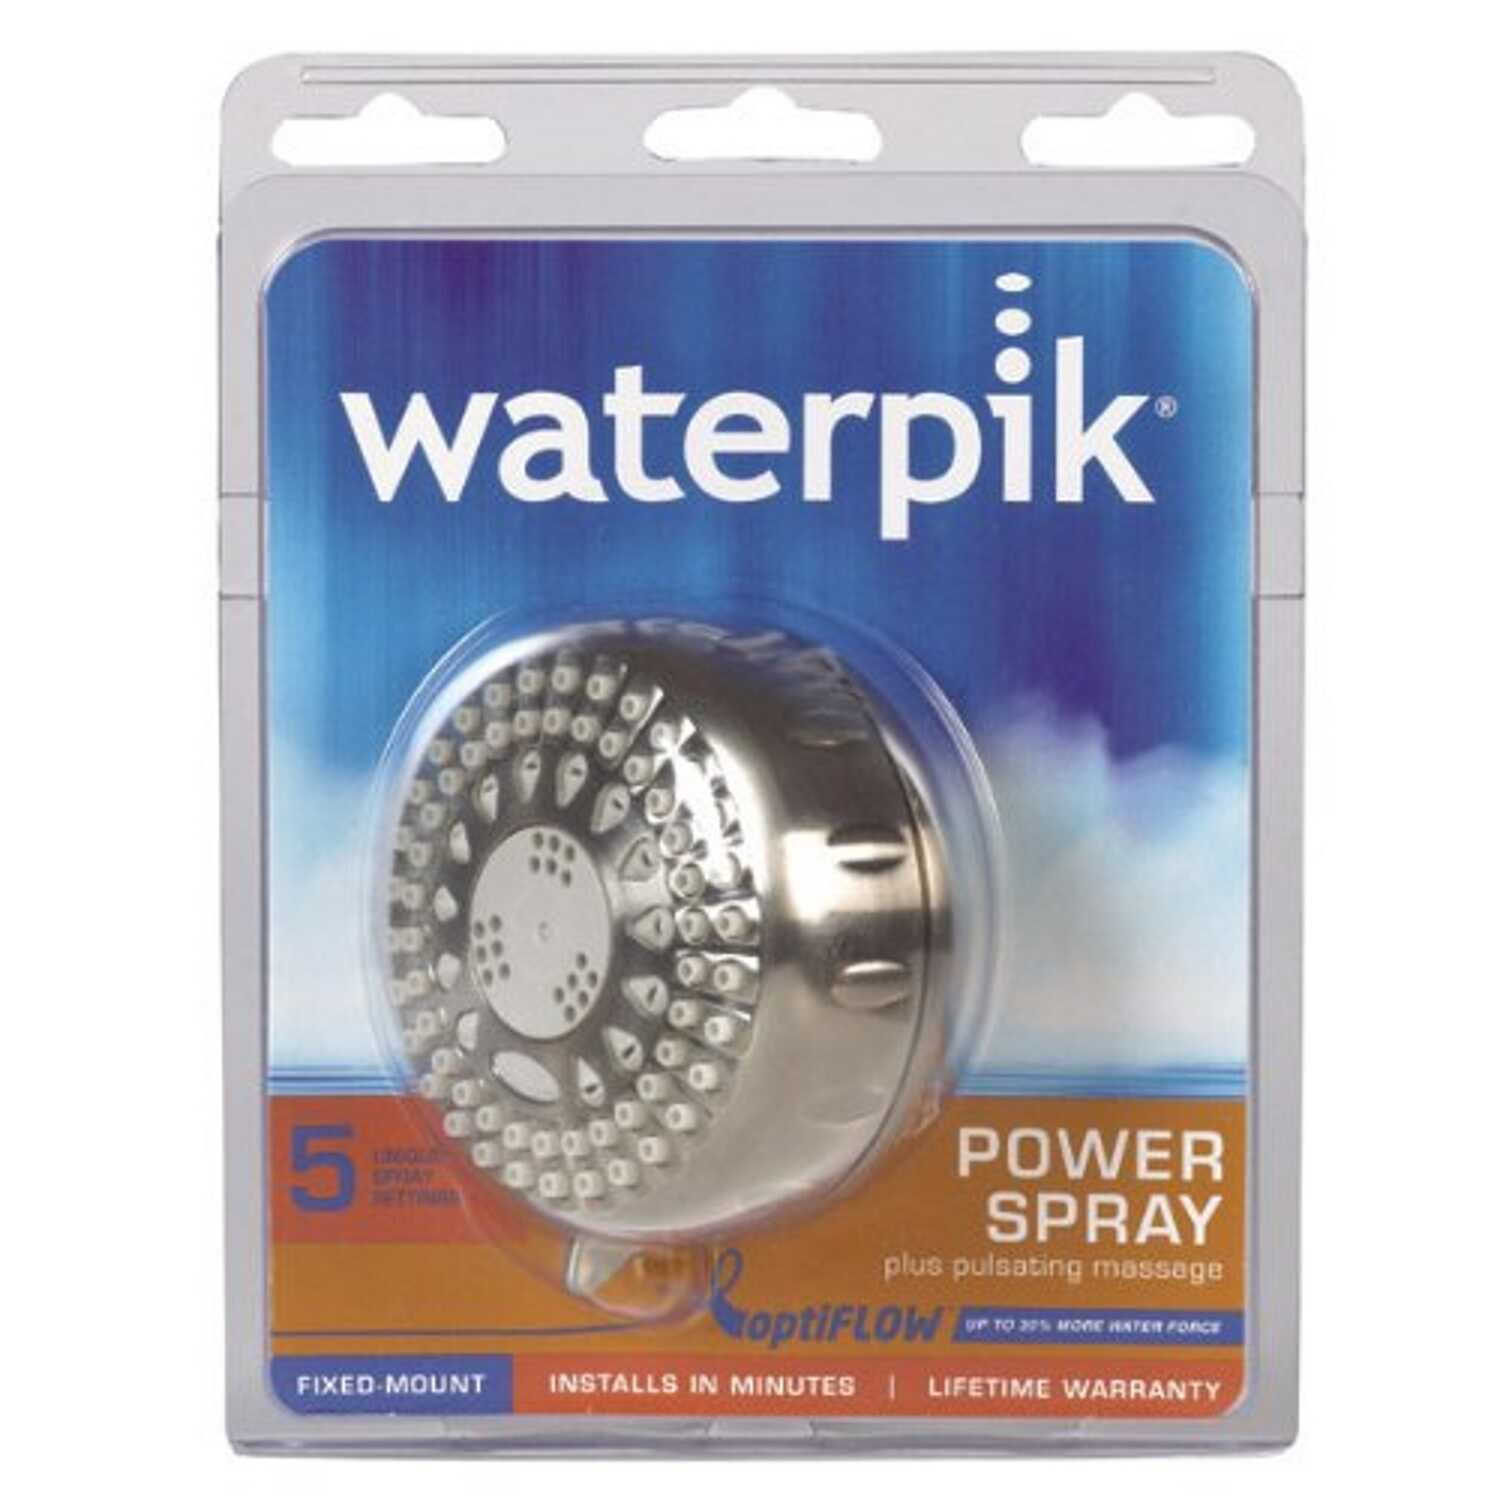 Waterpik  PowerSpray Plus  Brushed Nickel  5 settings Showerhead  1.8 gpm